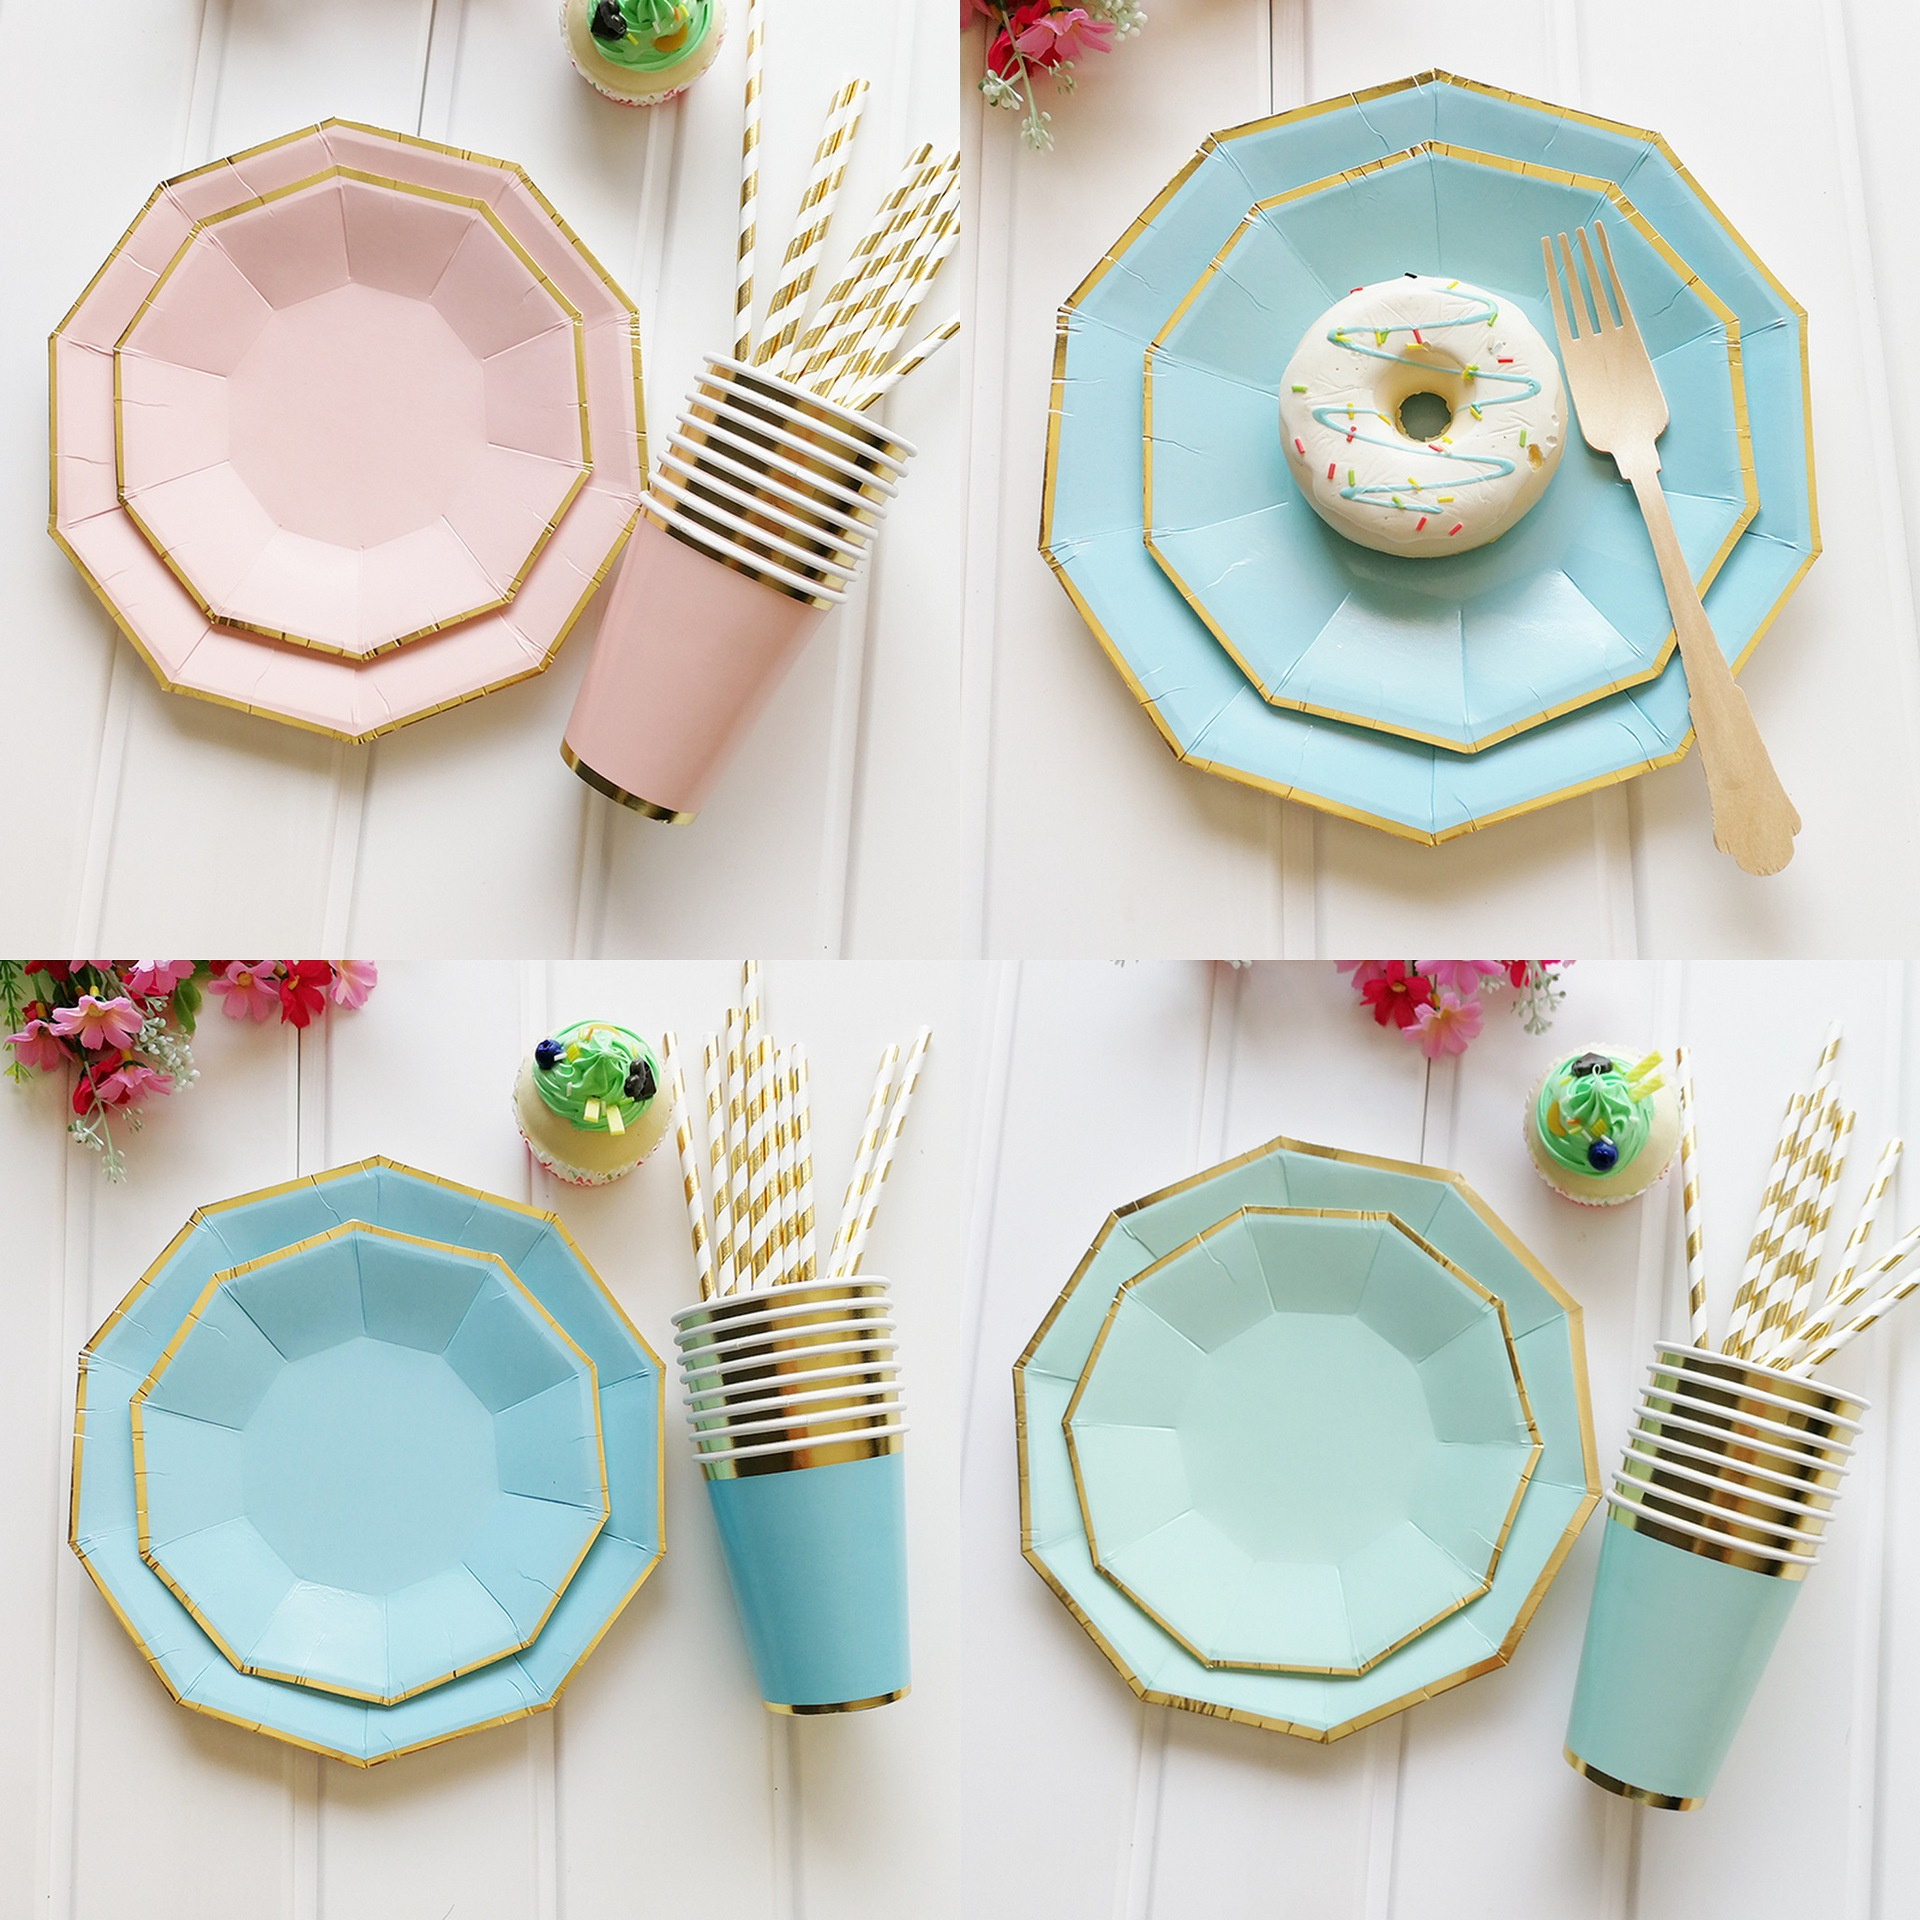 49Pcs/set Party Tableware Disposable Paper Plate Cups Straws Kids Birthday Party Wedding Food Grade Party Pink Paper Tableware